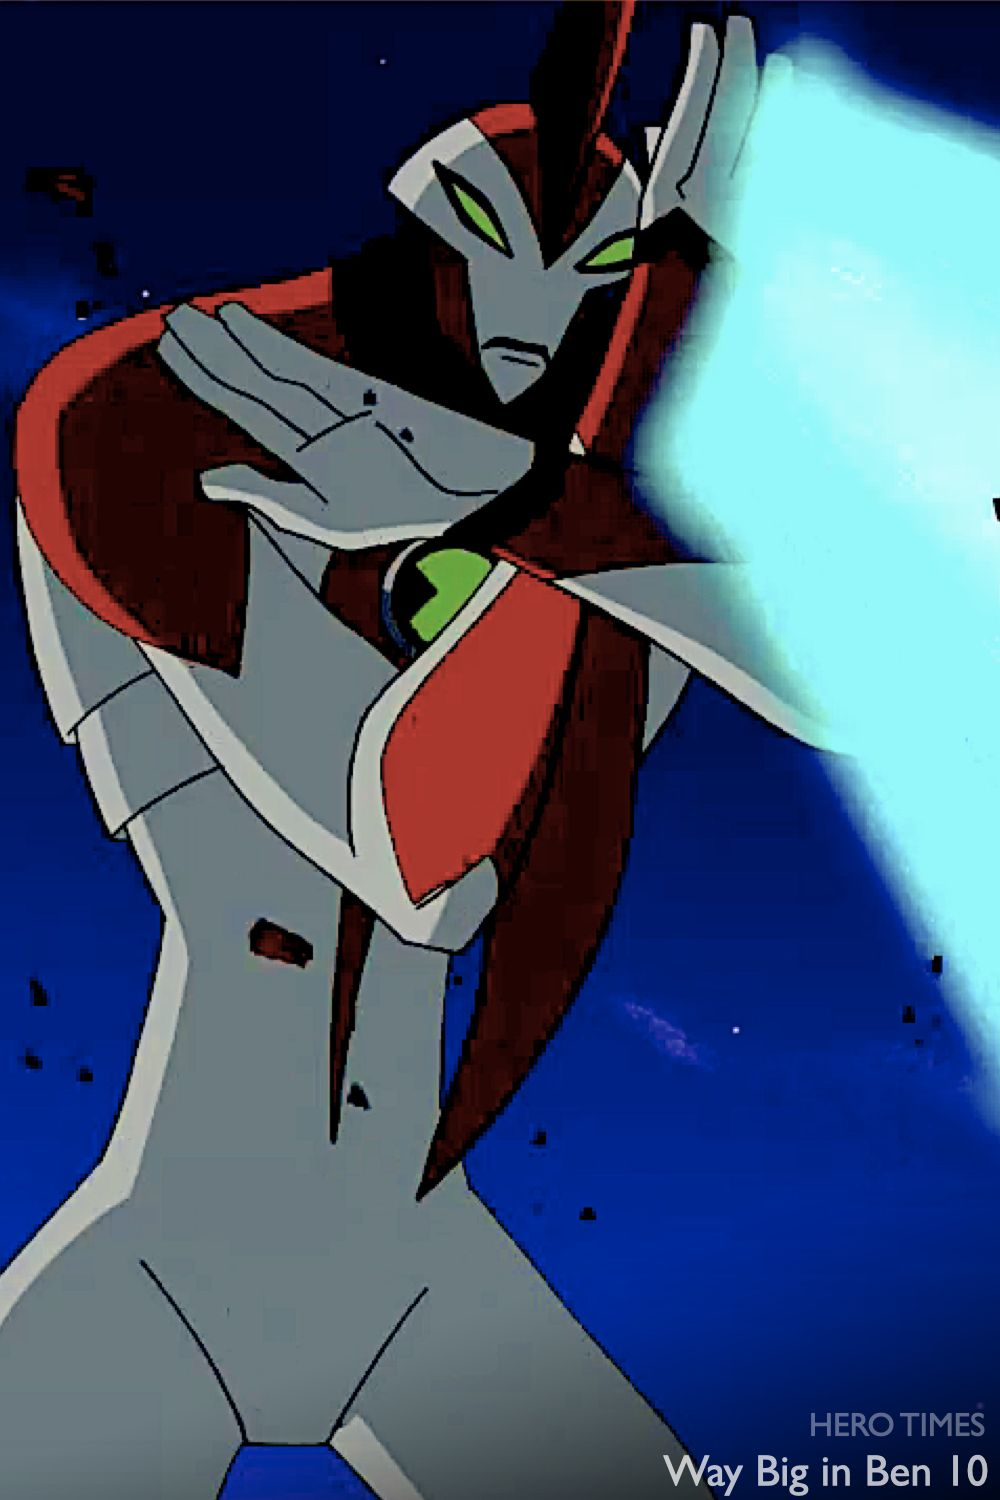 Waybig In Ben 10 Powers Of Way Big Ben 10 In 2020 Ben 10 Ben 10 Ultimate Alien Ben 10 Omniverse He has one red horn on the top of his head. waybig in ben 10 powers of way big